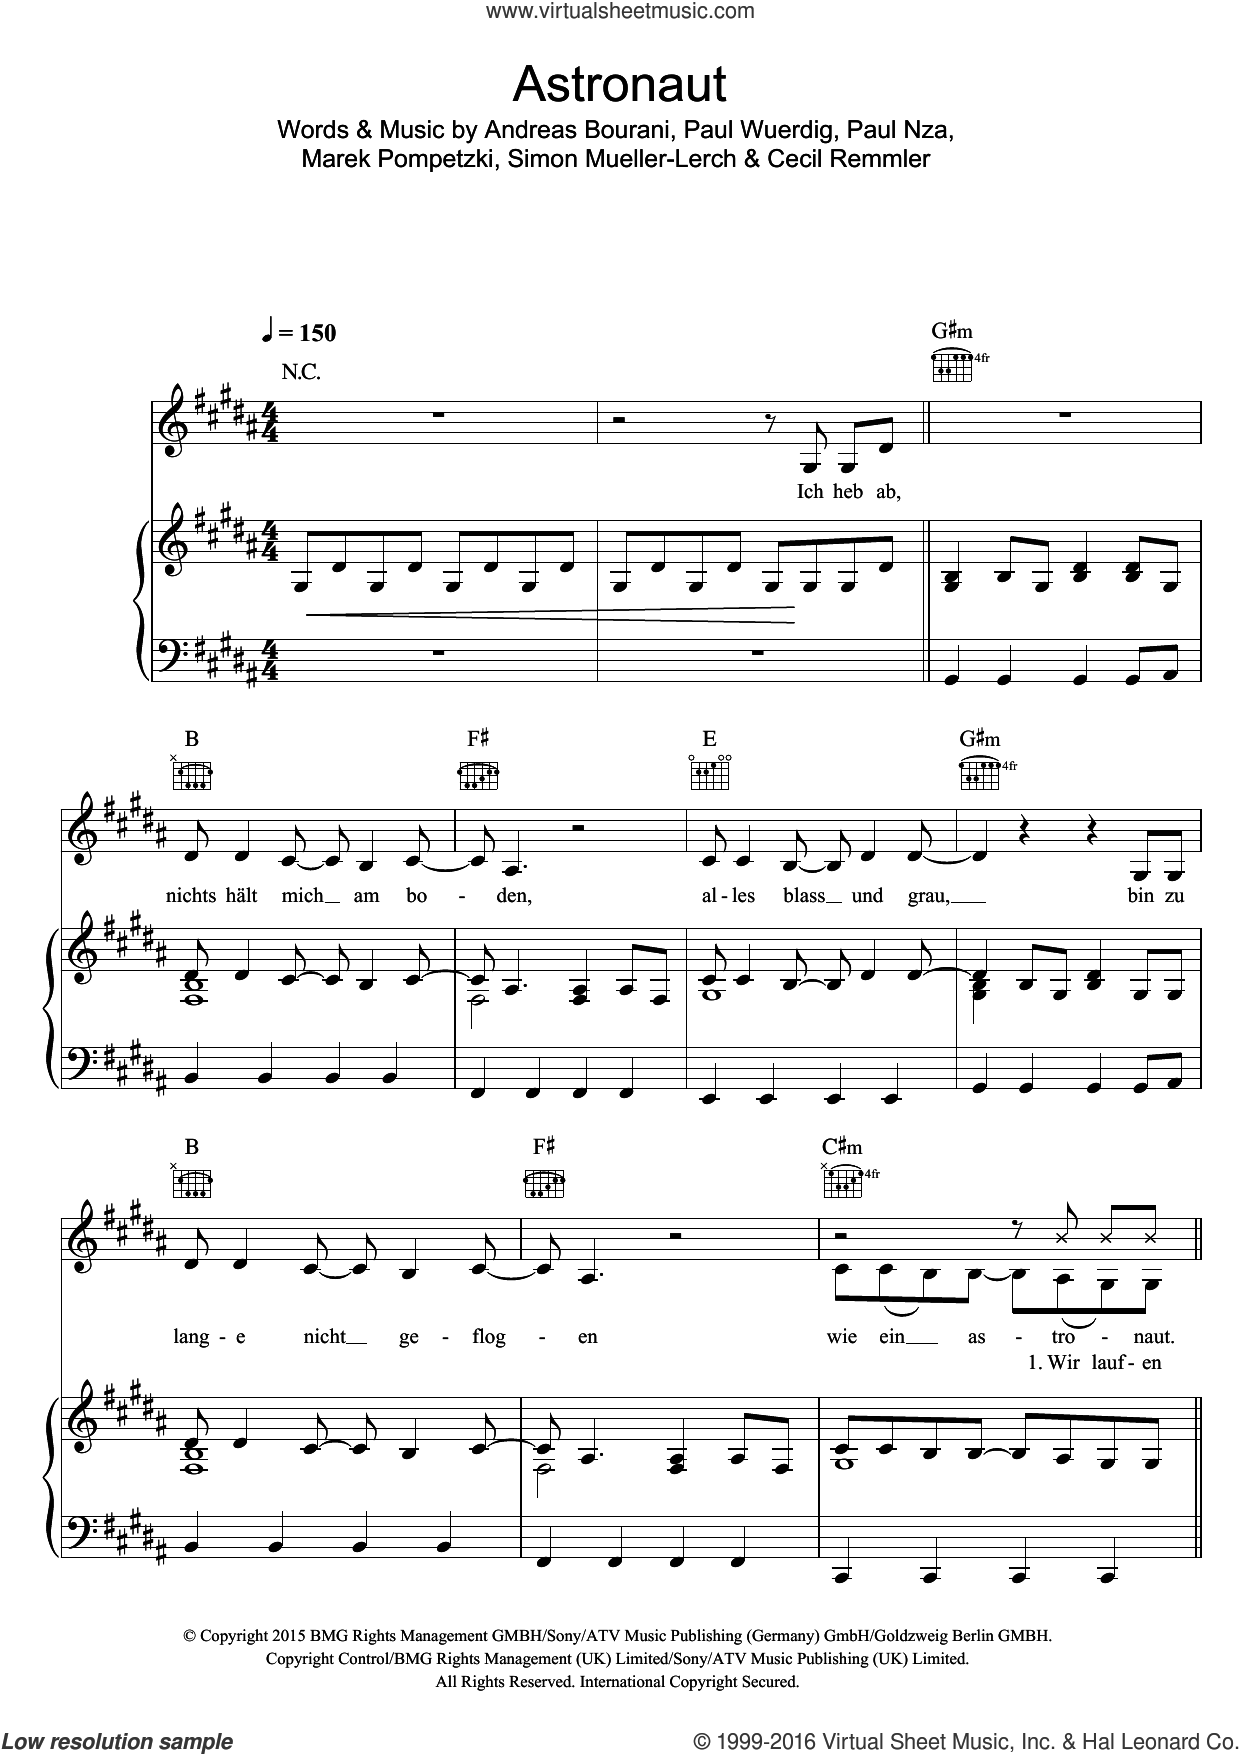 Astronaut (featuring Andreas Bourani) sheet music for voice, piano or guitar by Simon Mueller-Lerch